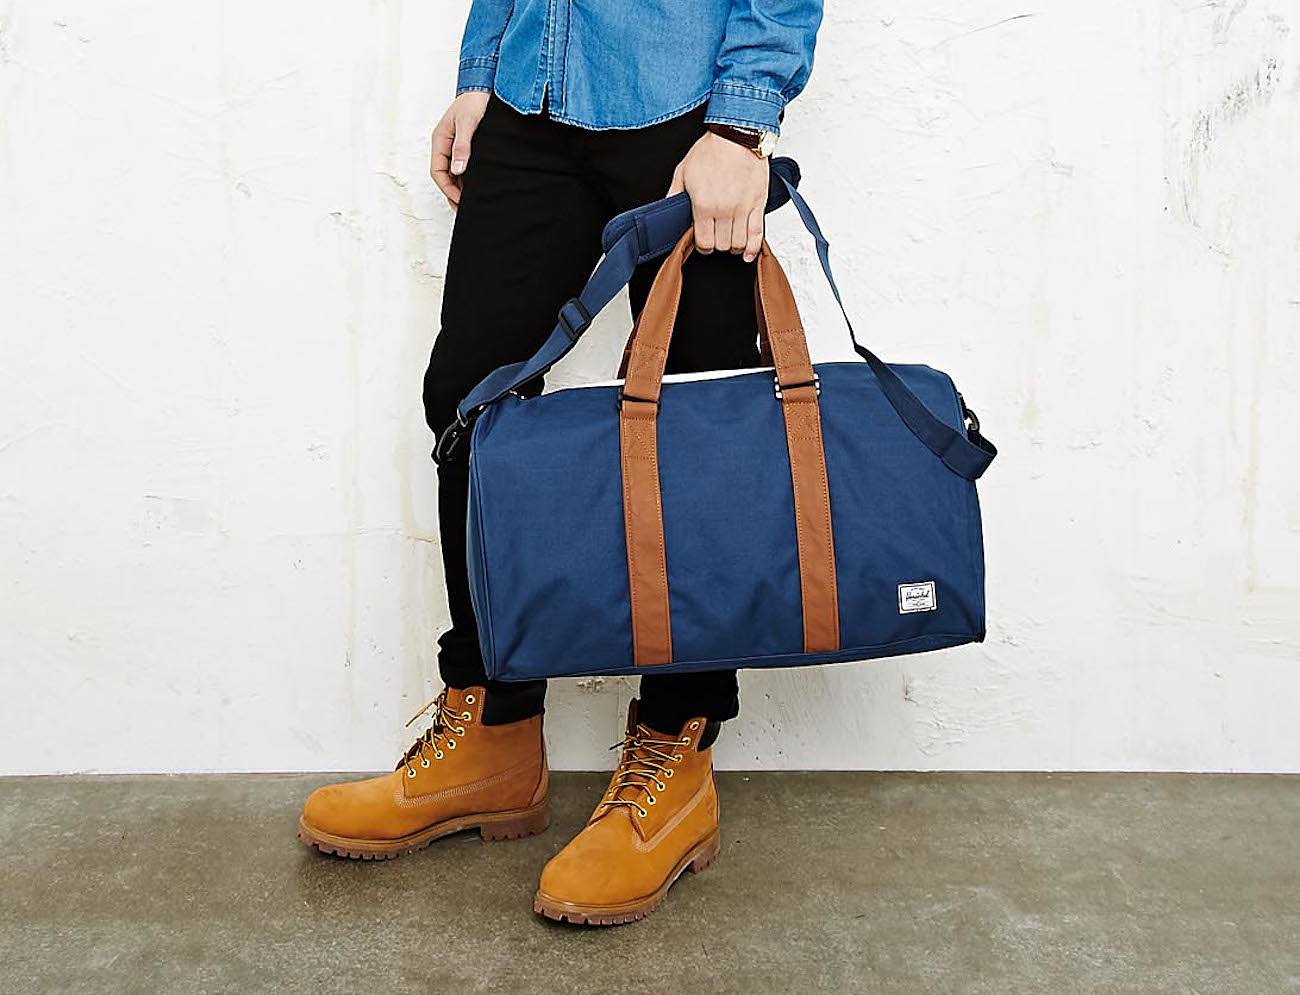 Herschel Large Backpack | Herschel Duffle Bag | Herschel Backpack Nyc